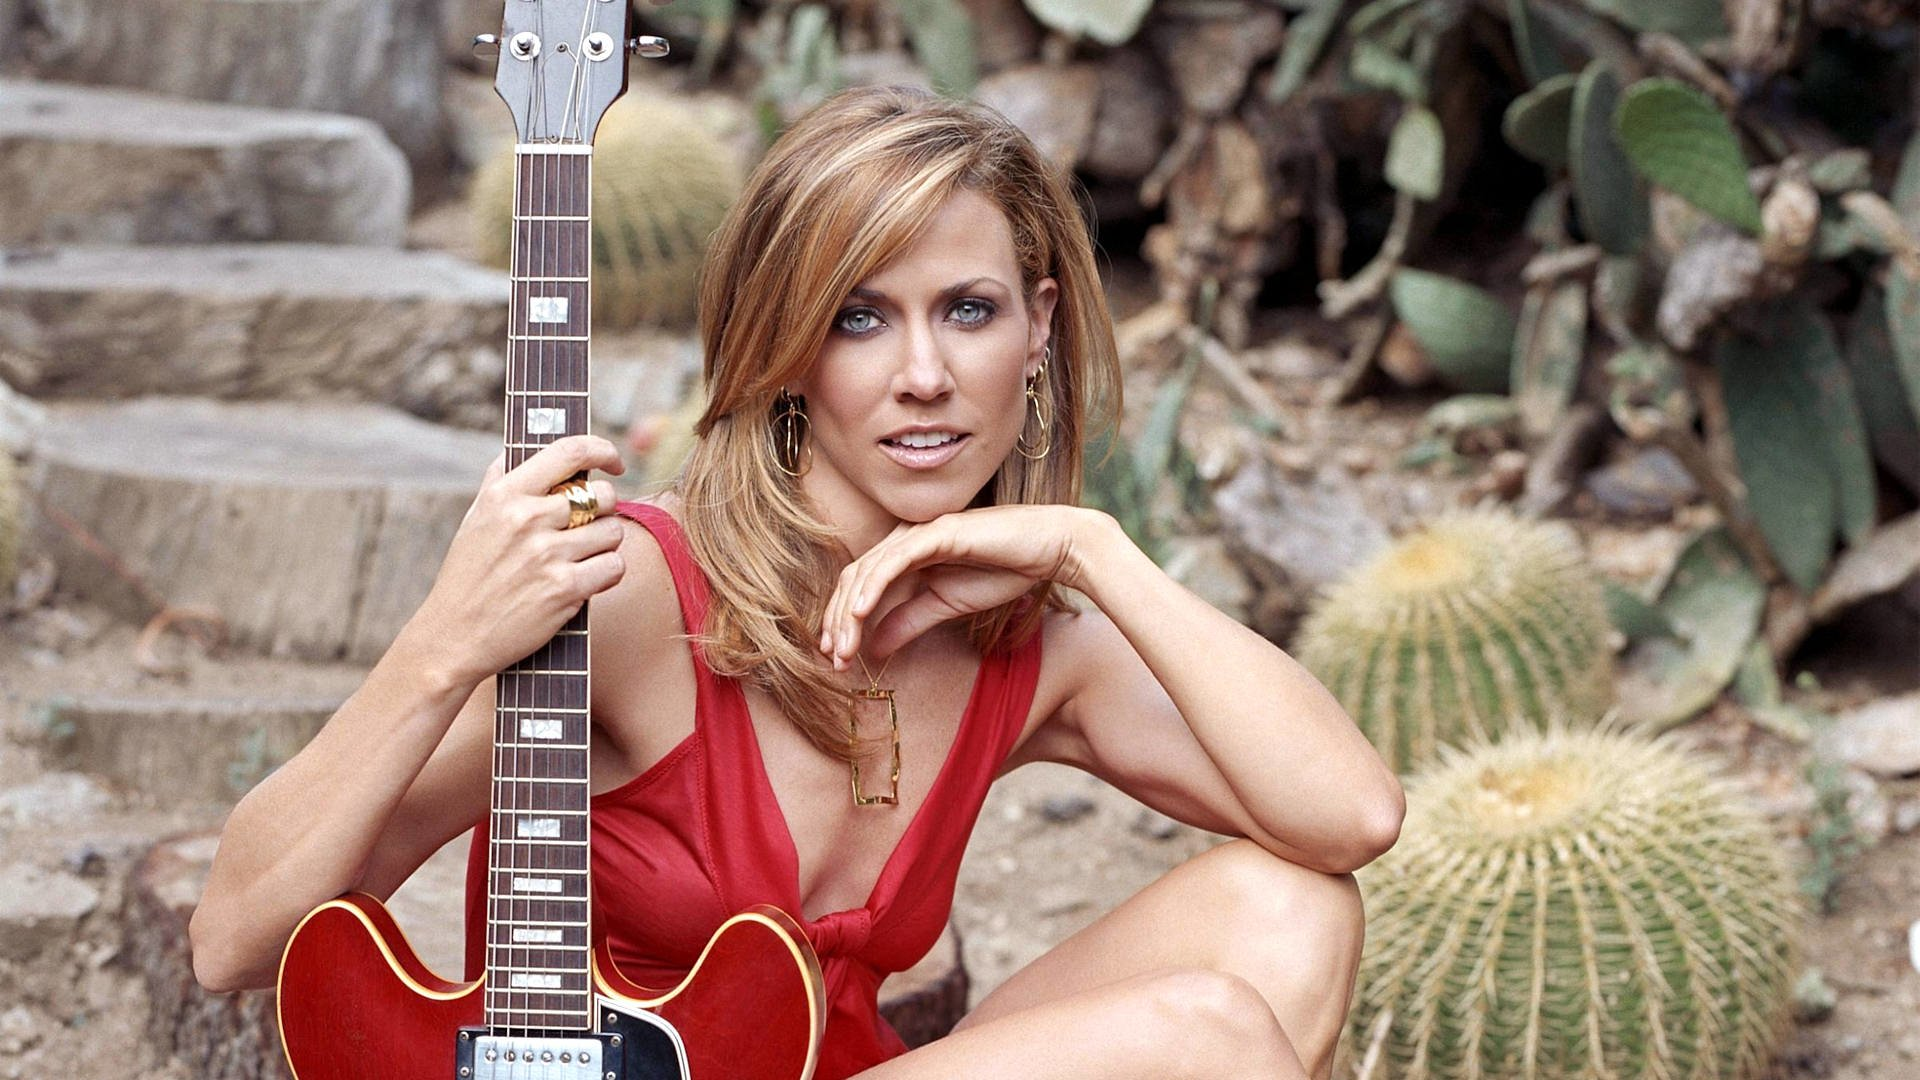 Guitar Wallpaper For Facebook Profile Girl Sheryl Crow Hd Wallpaper Background Image 1920x1080